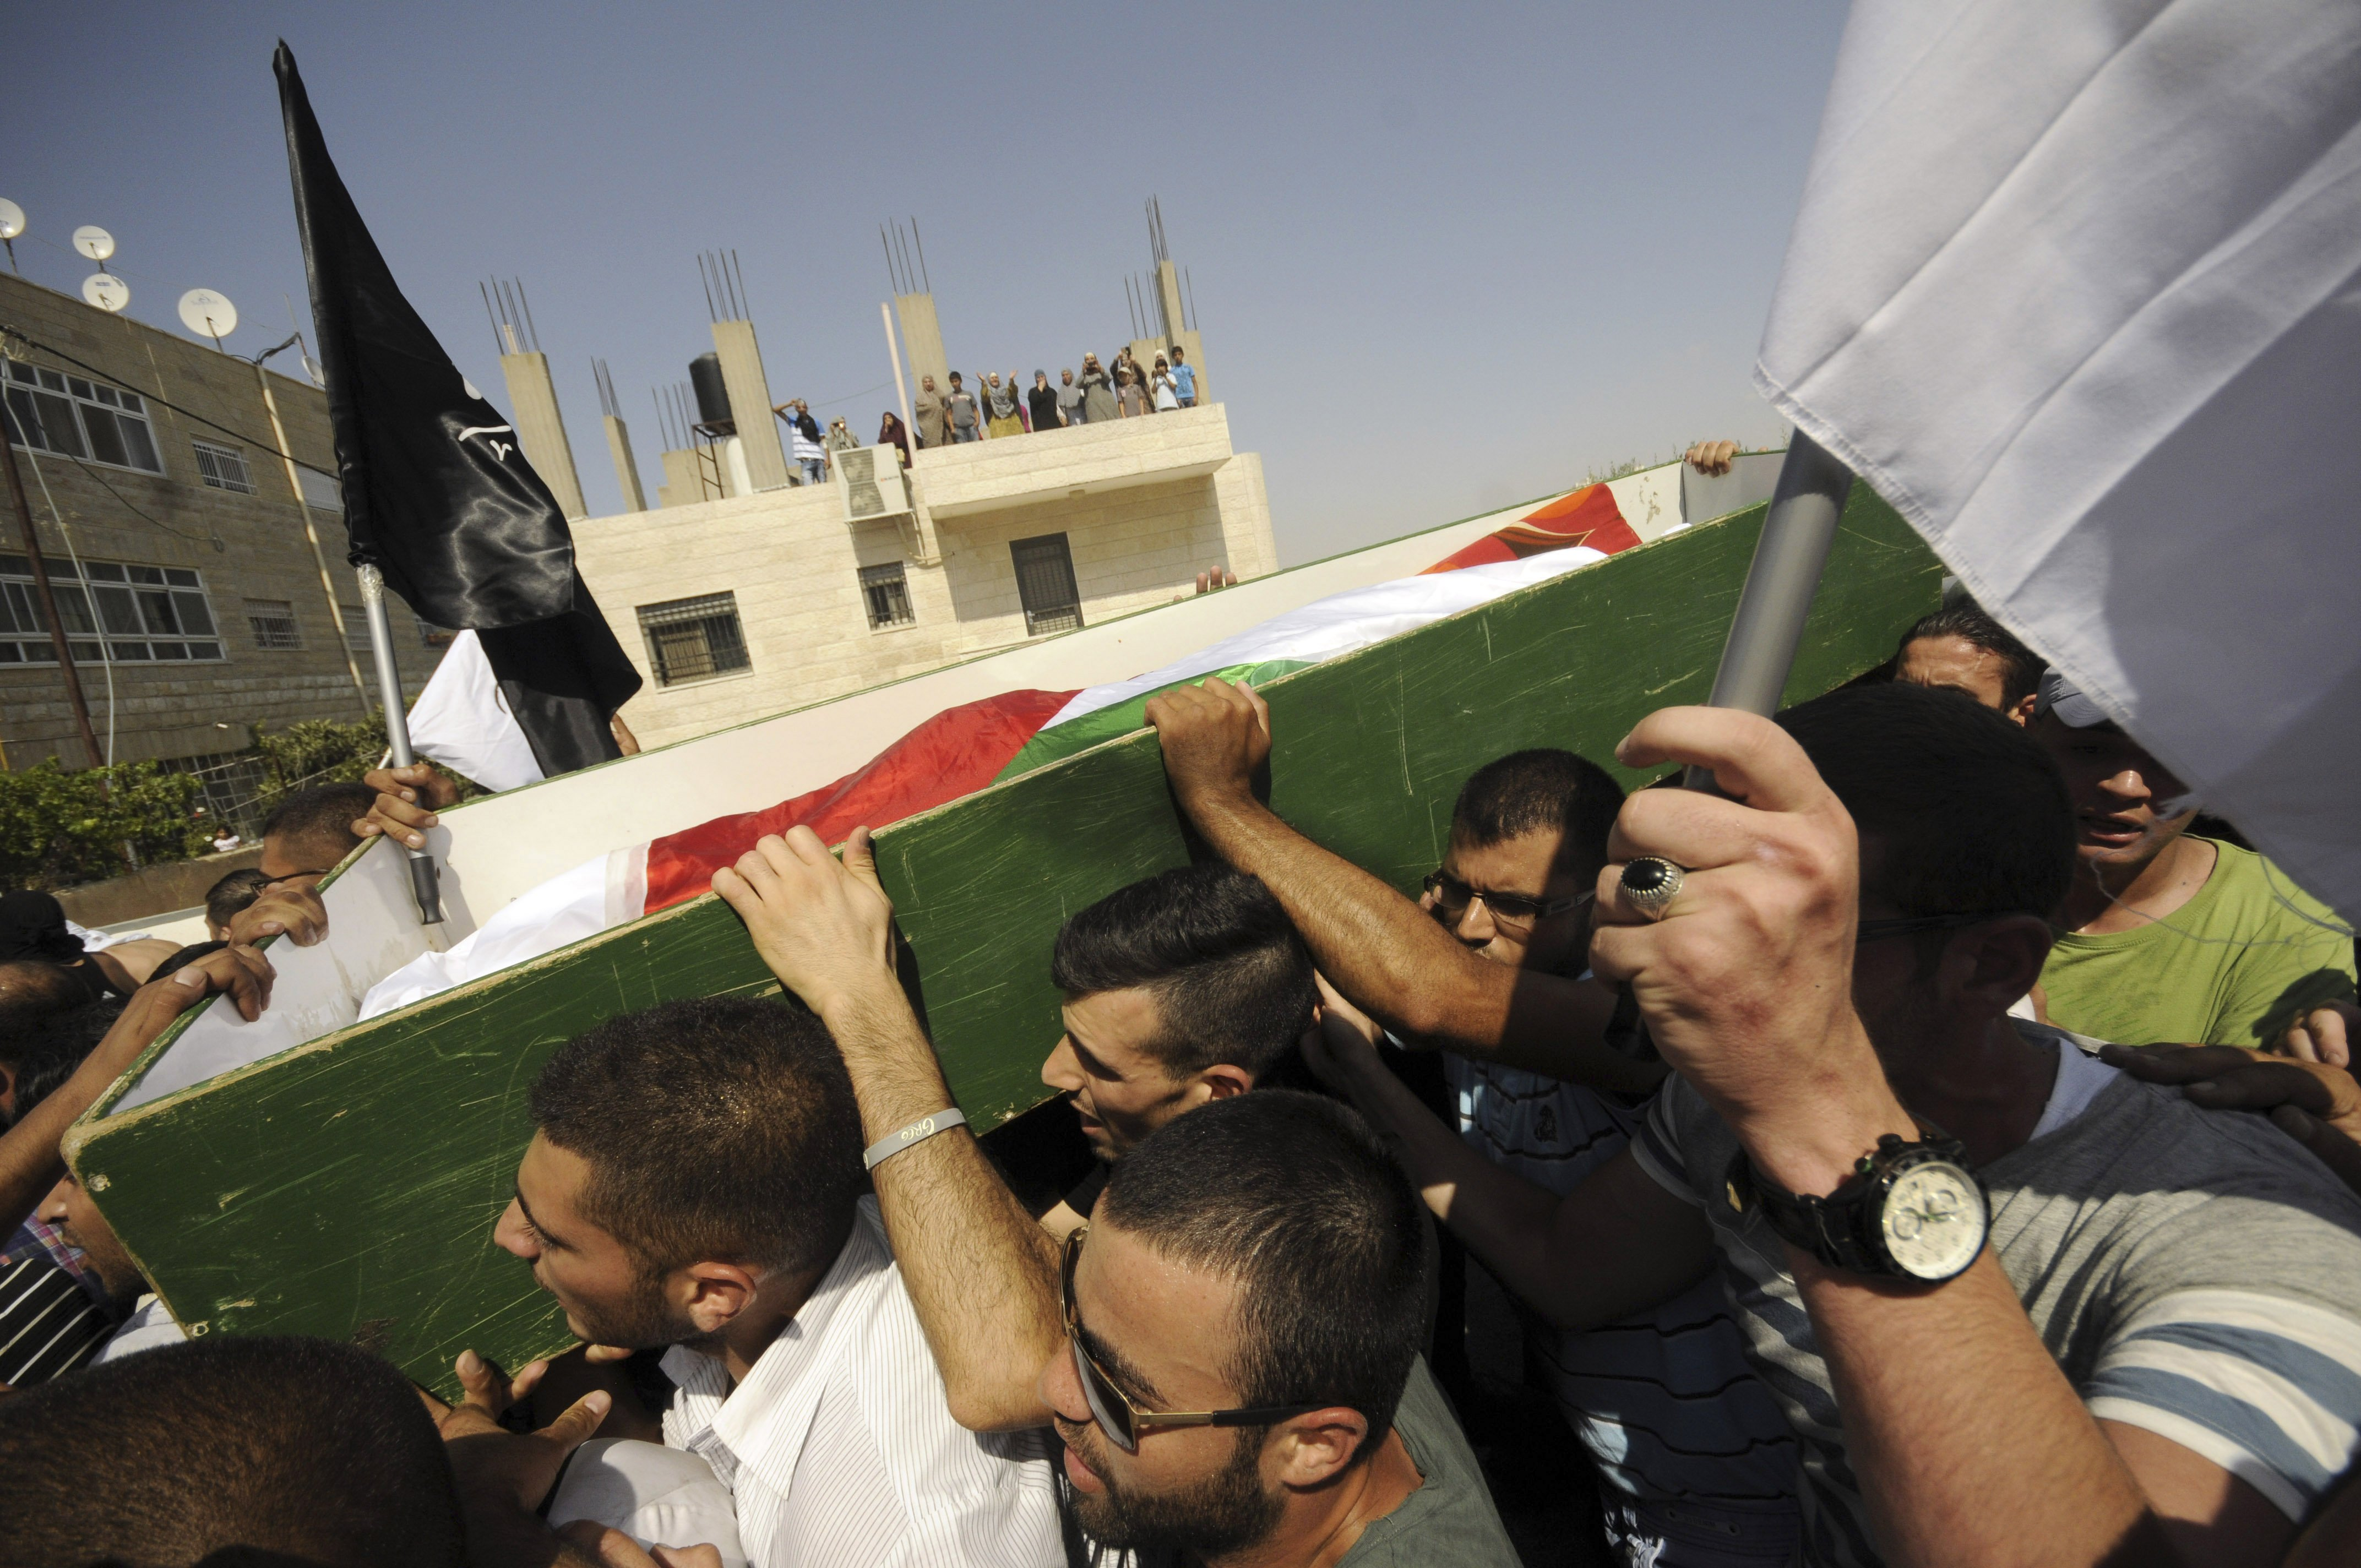 Palestinians carry the body of 16-year-old Mohammed Abu Khdeir in Jerusalem on Friday, July 4, 2014.